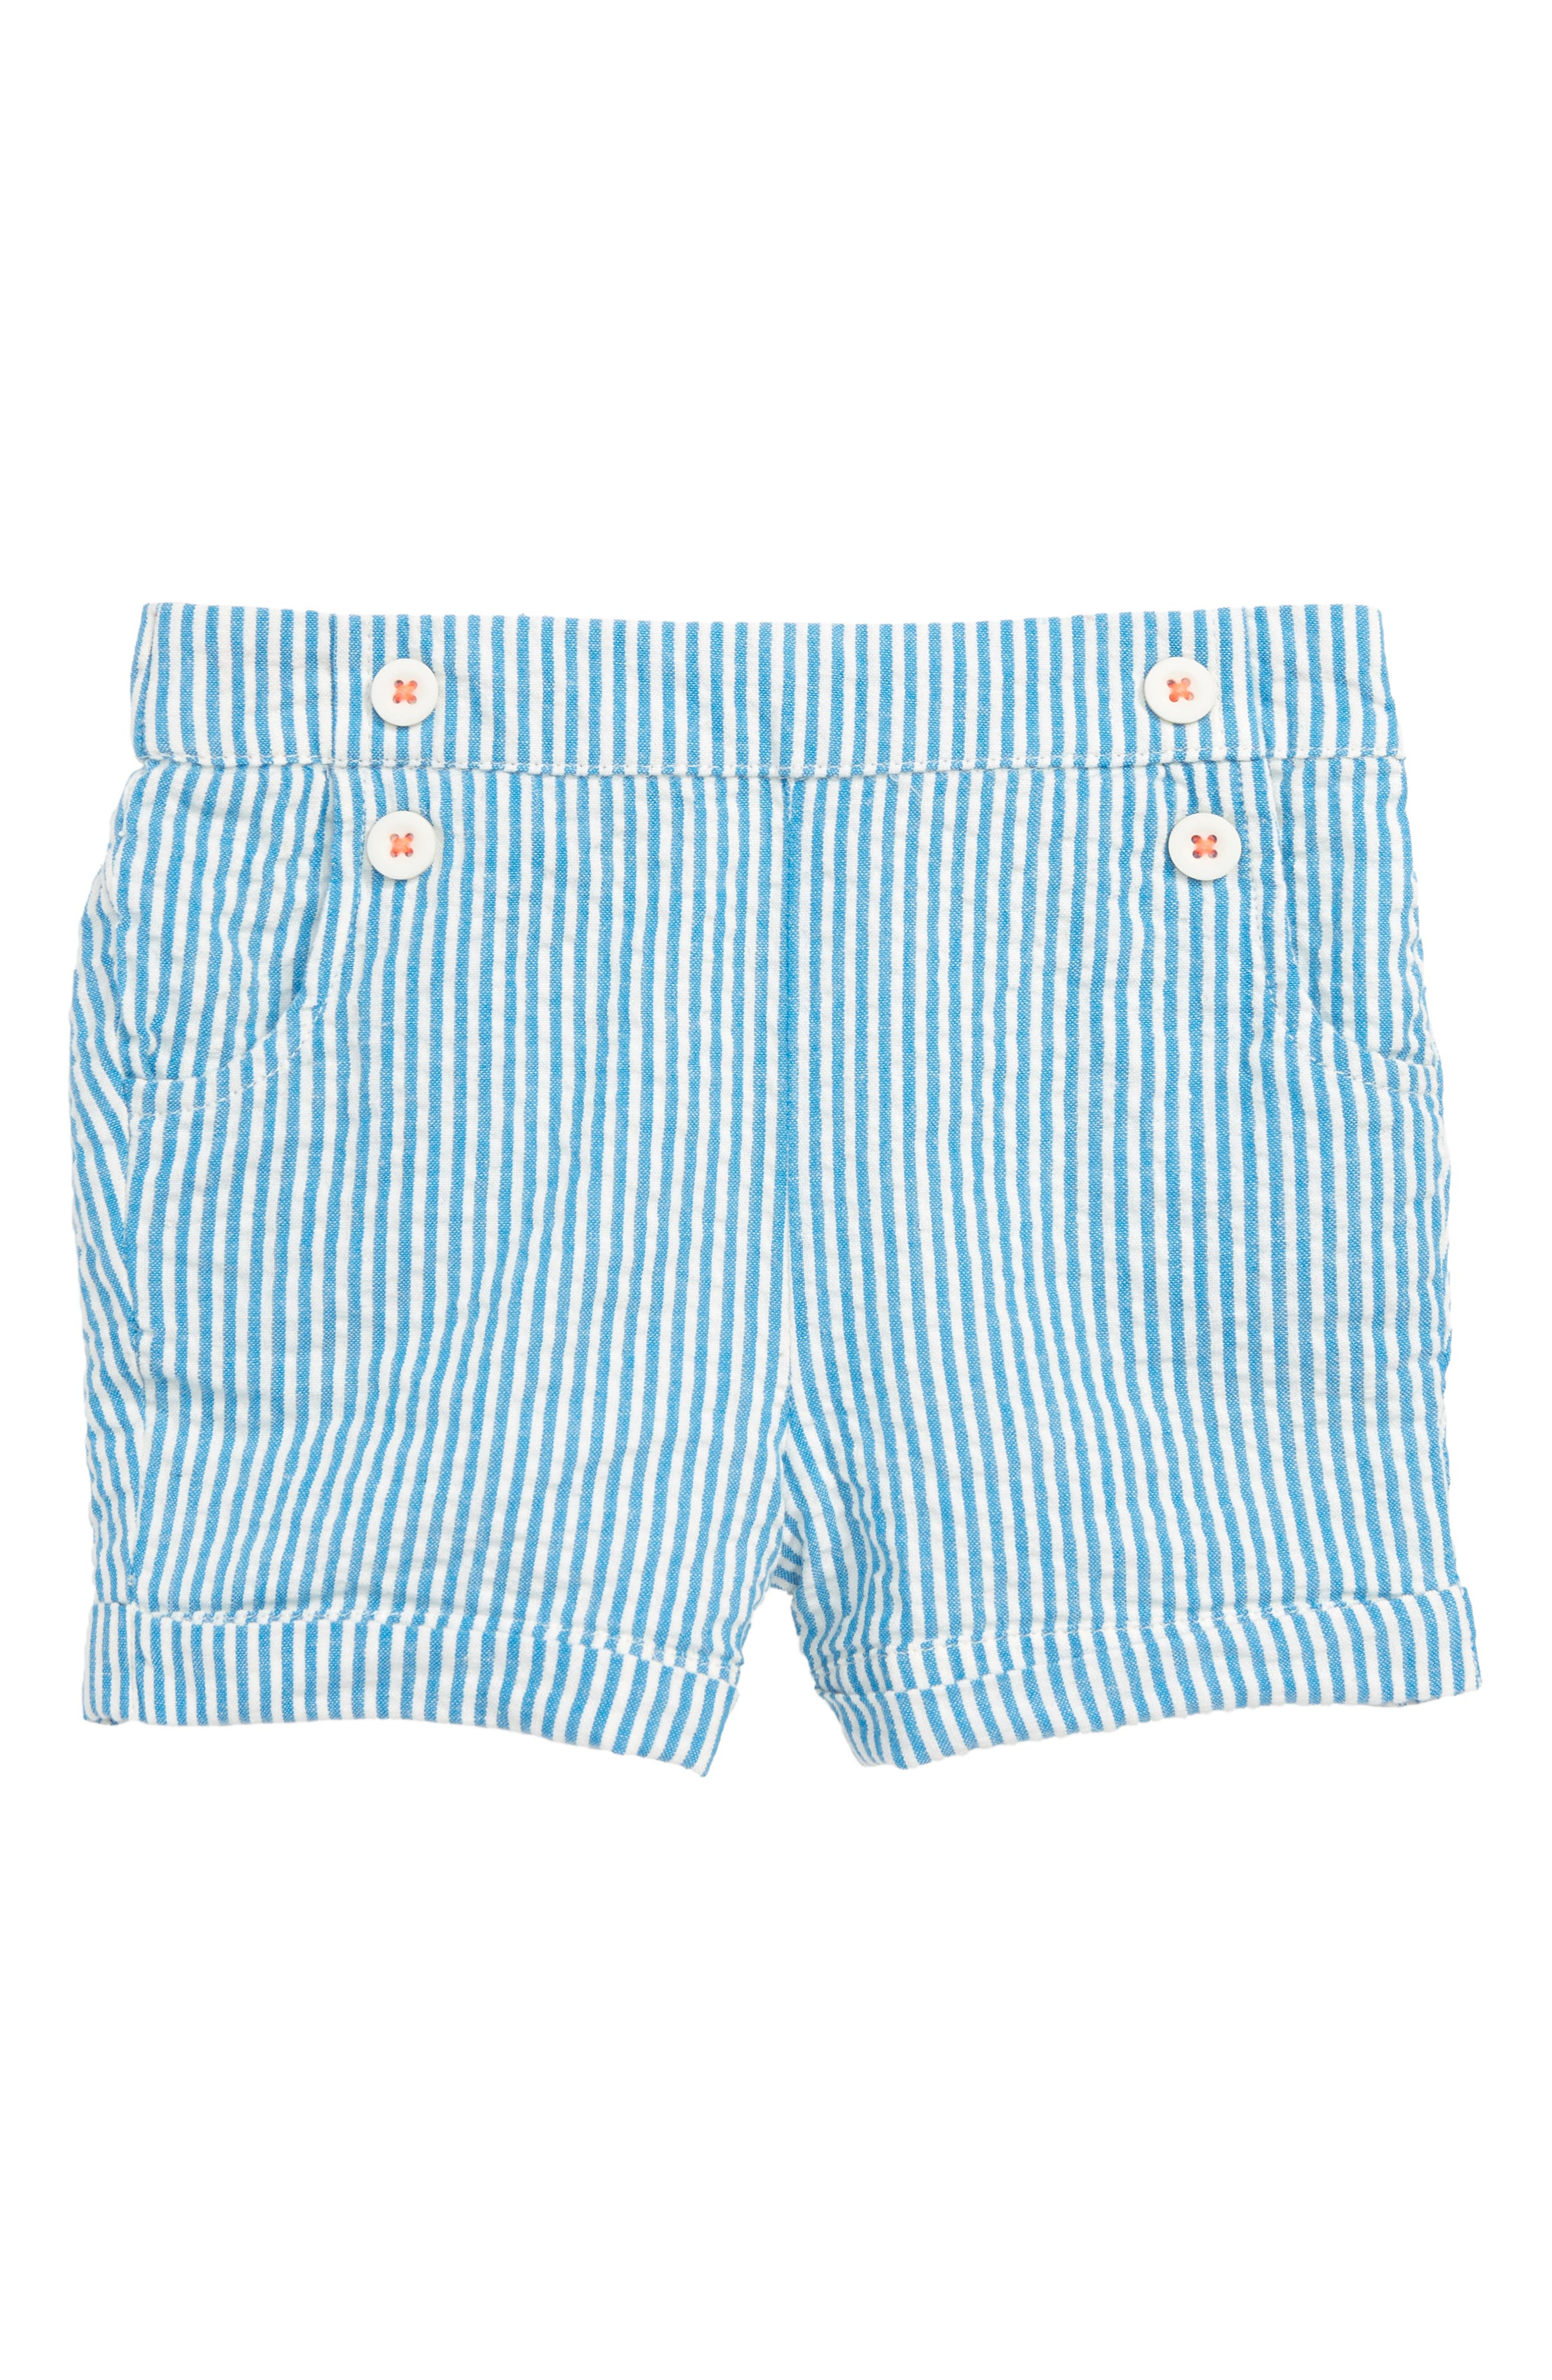 Seersucker Shorts,                             Main thumbnail 1, color,                             Fluro Blue/ Ivory Ticking